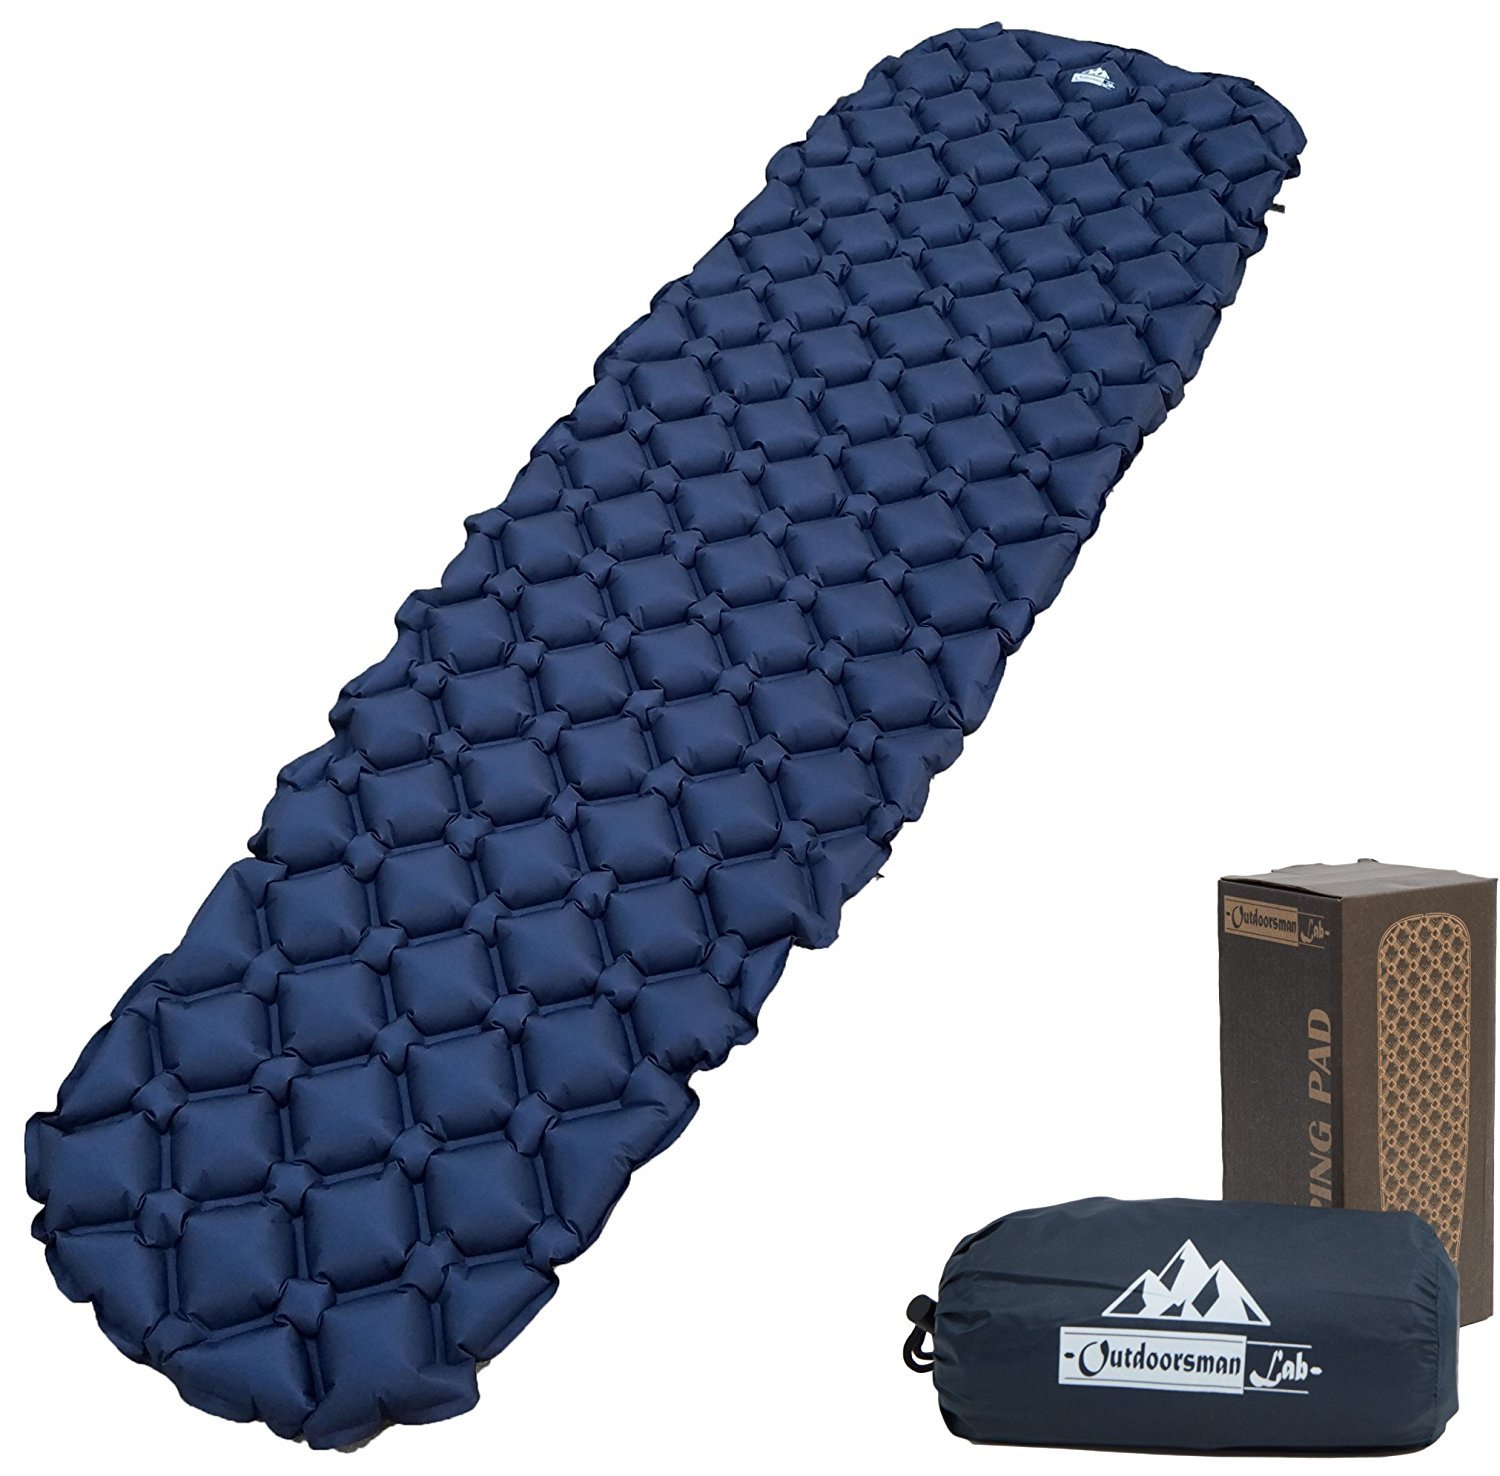 OutdoorsmanLab Ultralight Sleeping Pad スリーピングパッド - Ultra-Compact for Backpacking, Camping, Travel w/Super Comfortable Air-Support Cells Design (並行輸入品) B07C48GXK7 Blue One Size One Size|Blue